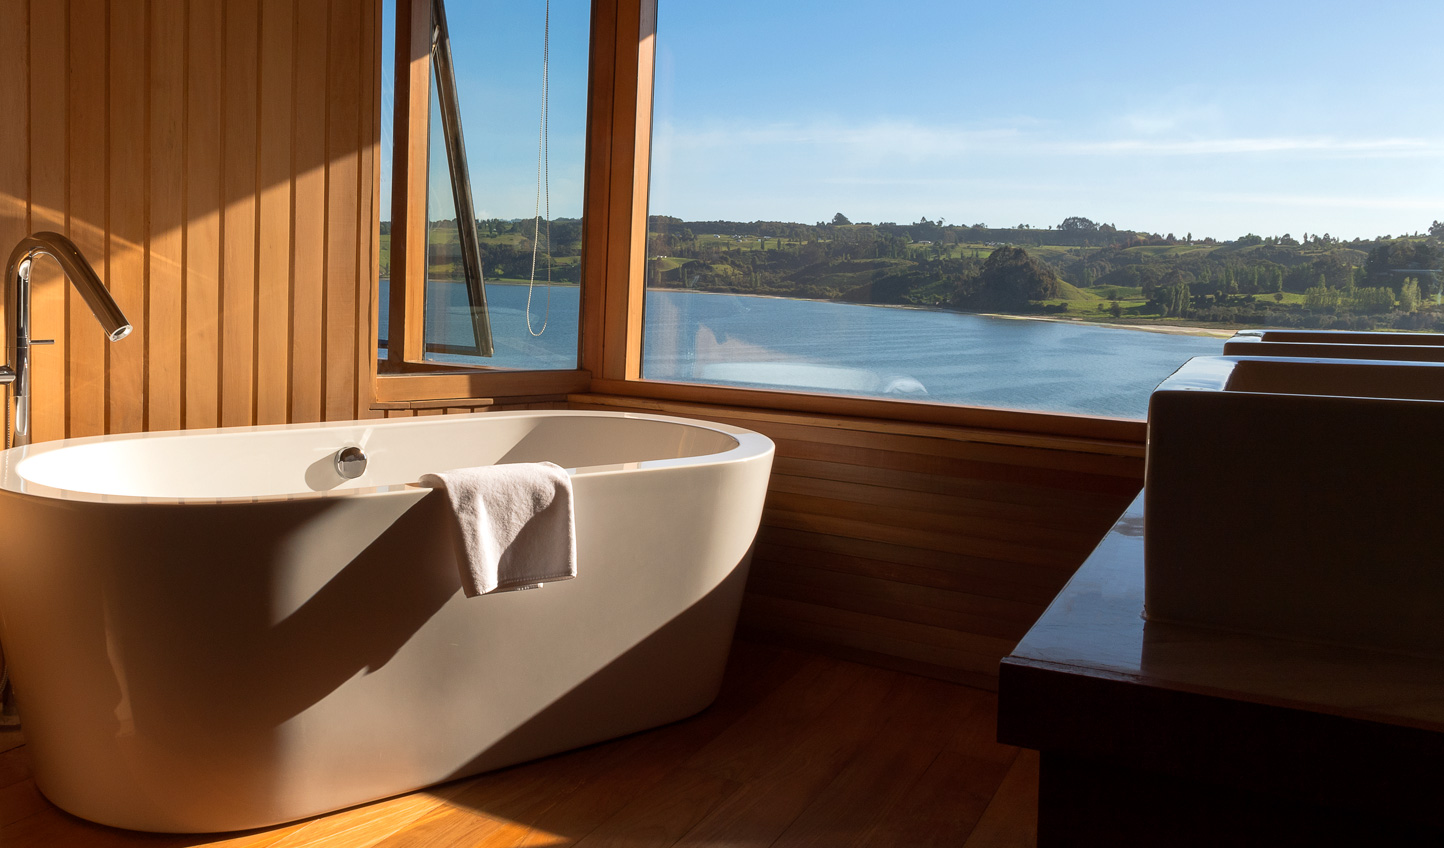 Soak away your stresses in a bathtub with a serious view